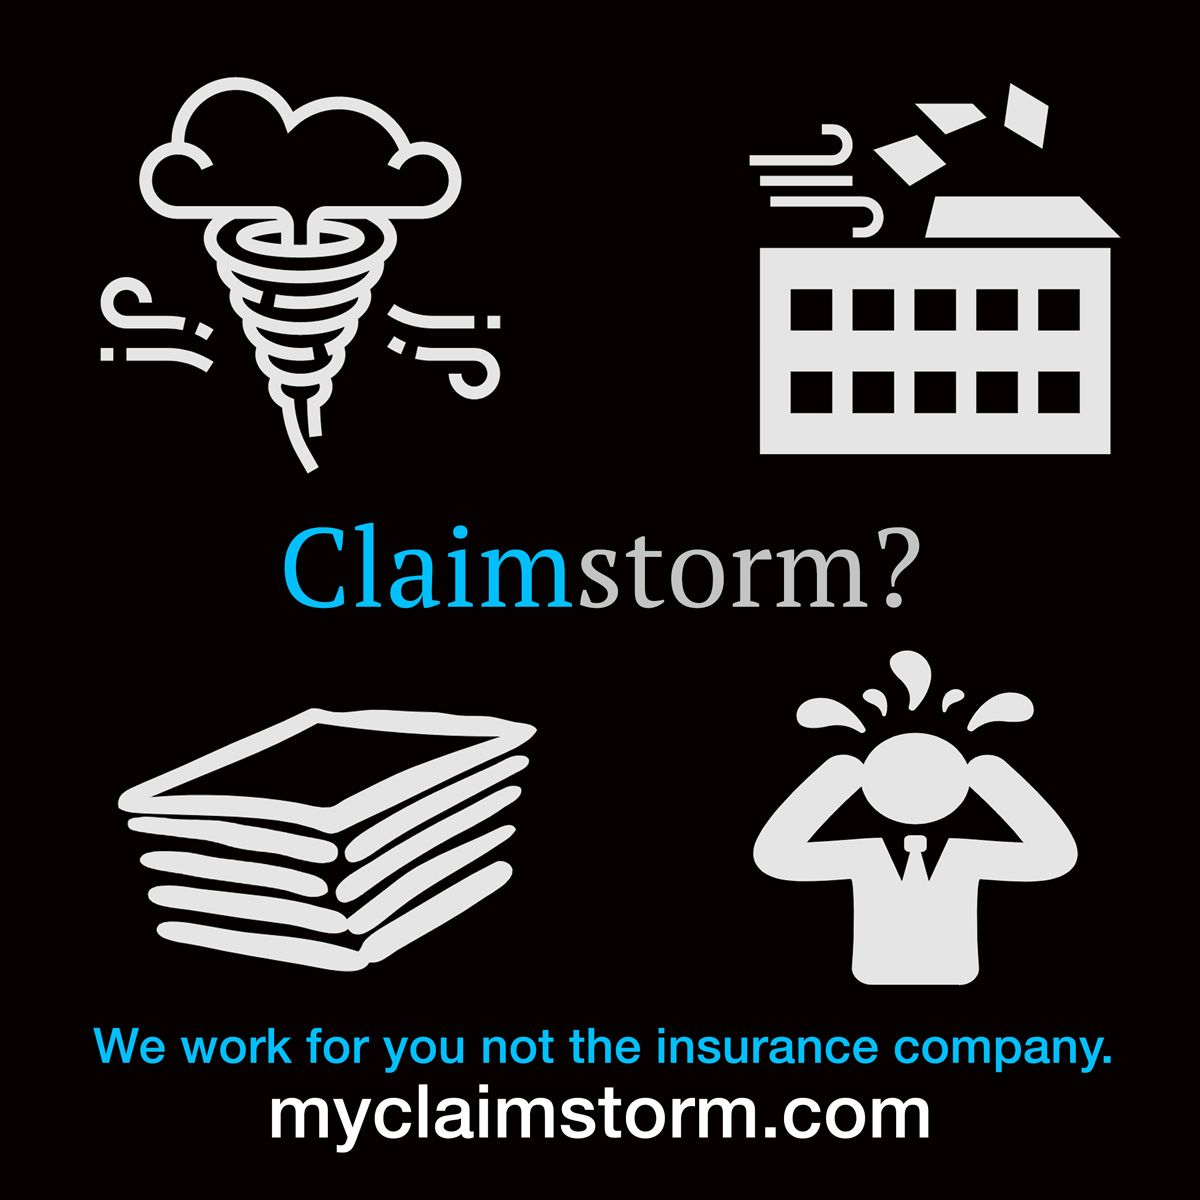 We Understand After The Storm After The Damage The Insurance